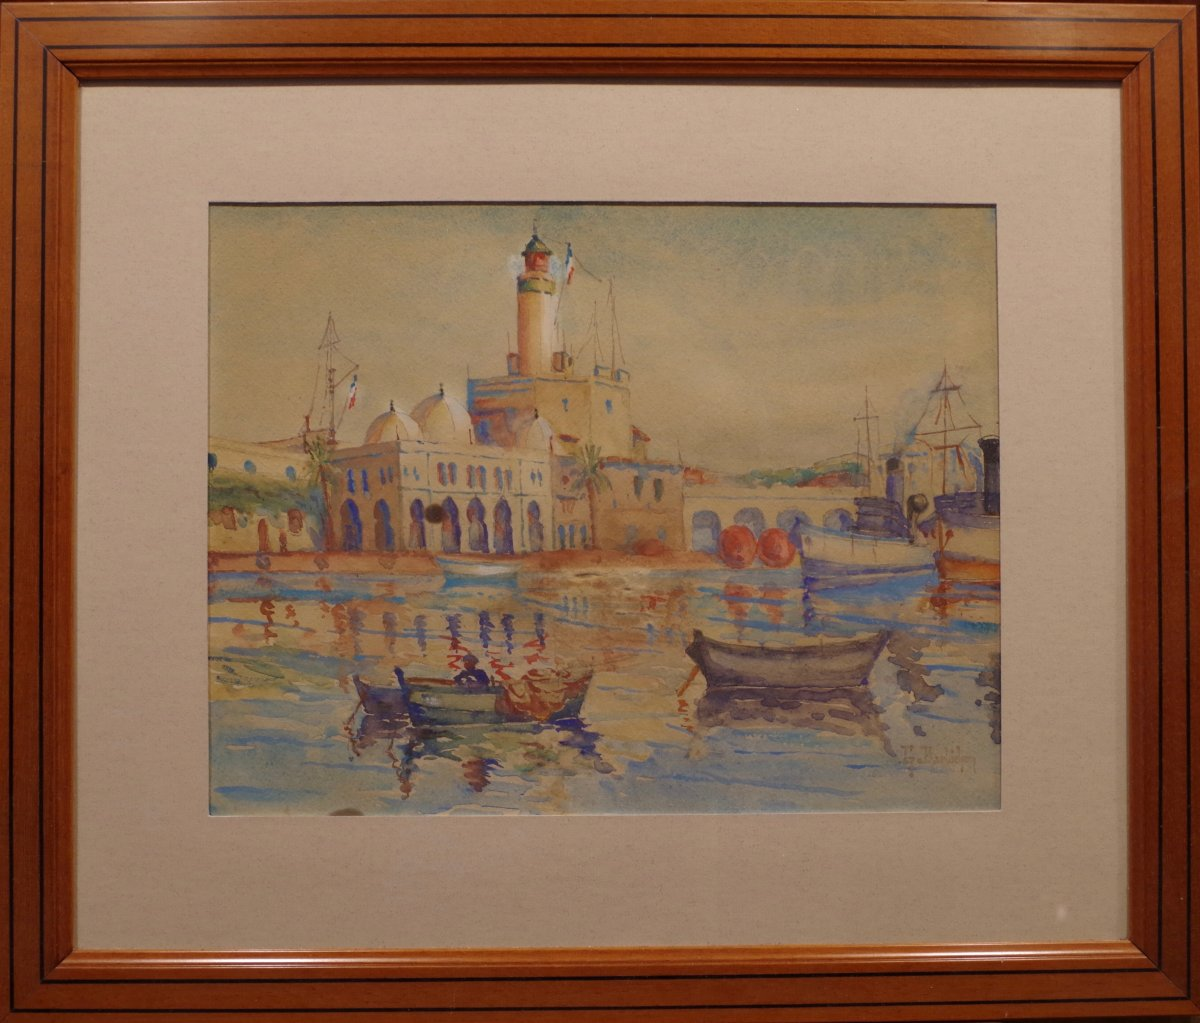 Gustave Barbichon Watercolor From Port d'Alger (admiralty)